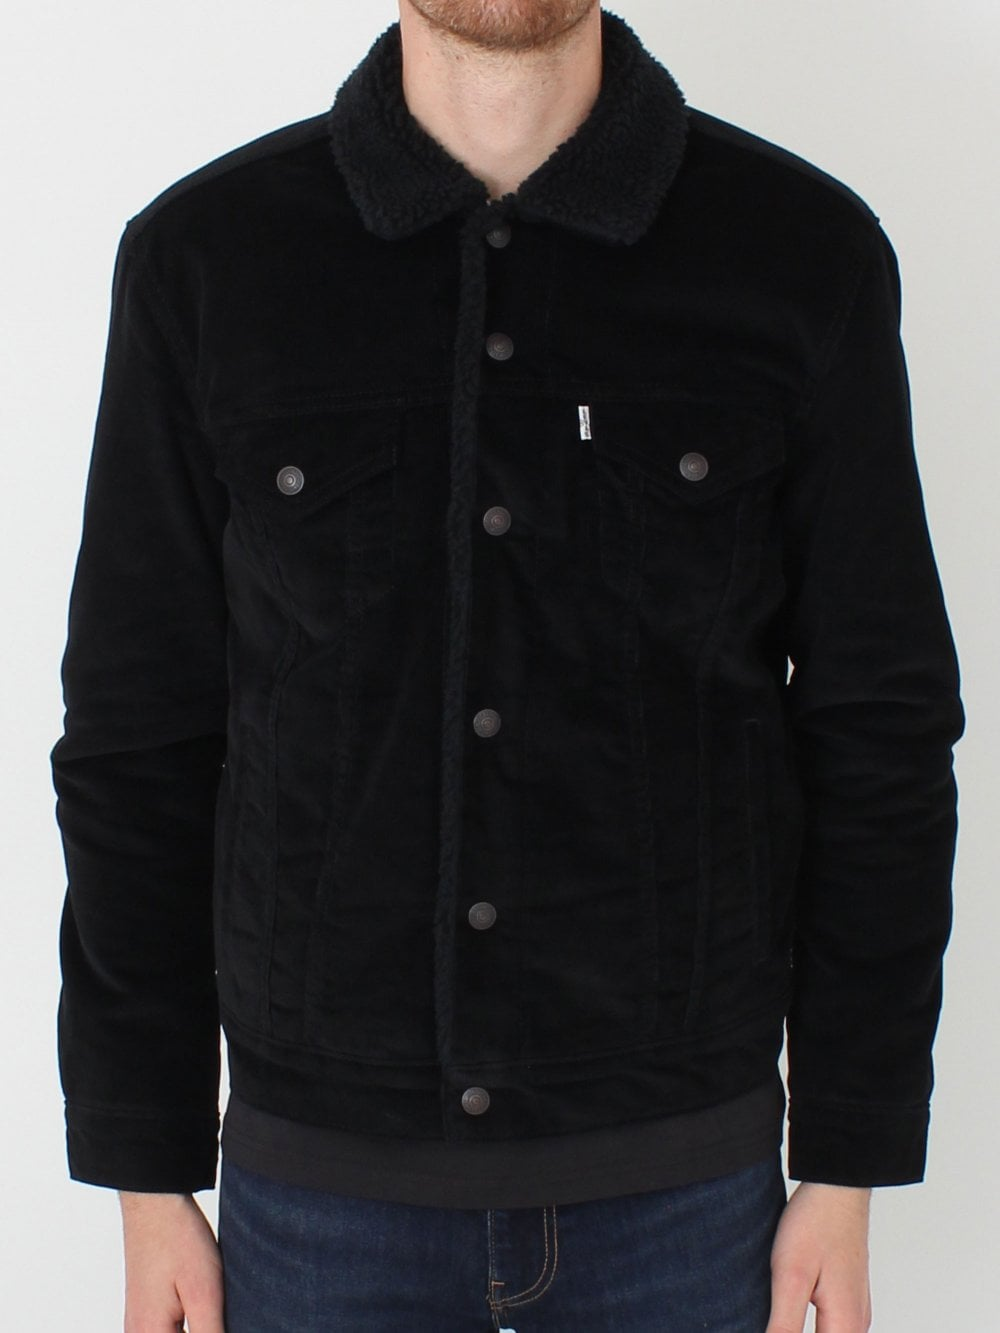 Levis Type 3 Sherpa Trucker in Black  fe8c0eea32ac